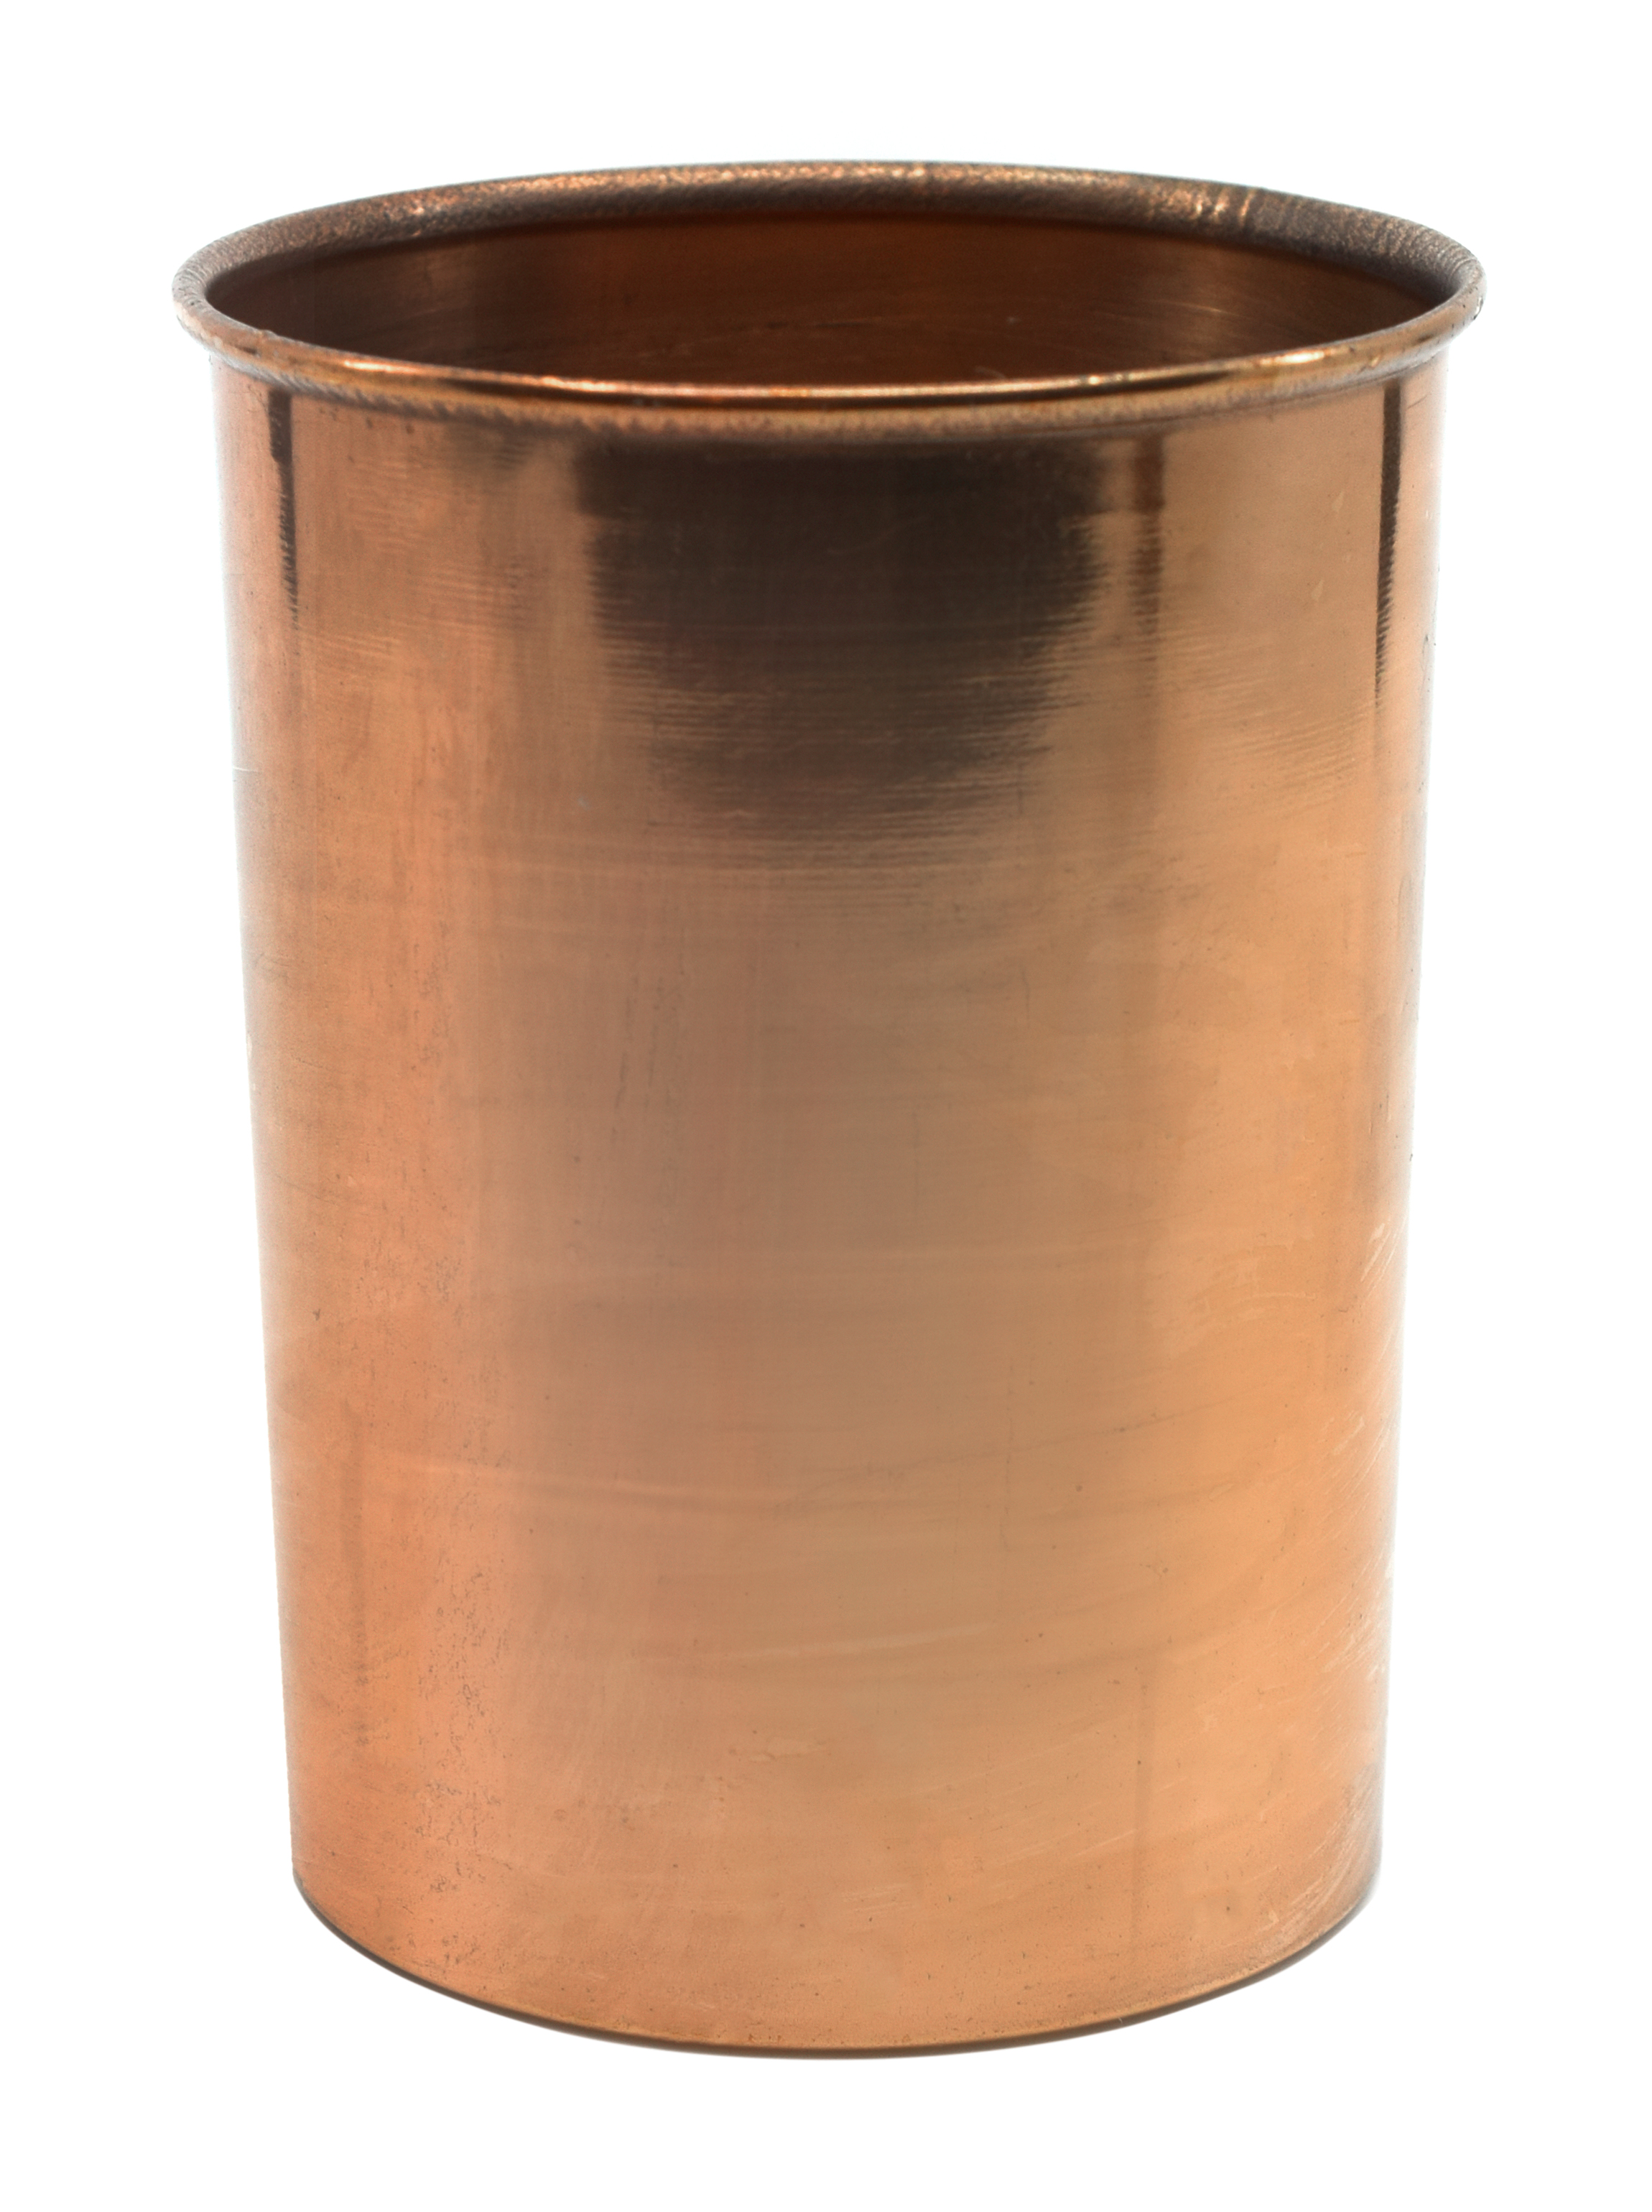 "Copper Calorimeter, 4"" x 2.75"" Rolled Rim & Parallel Sides No Stirrer Included Eisco Labs by Eisco"